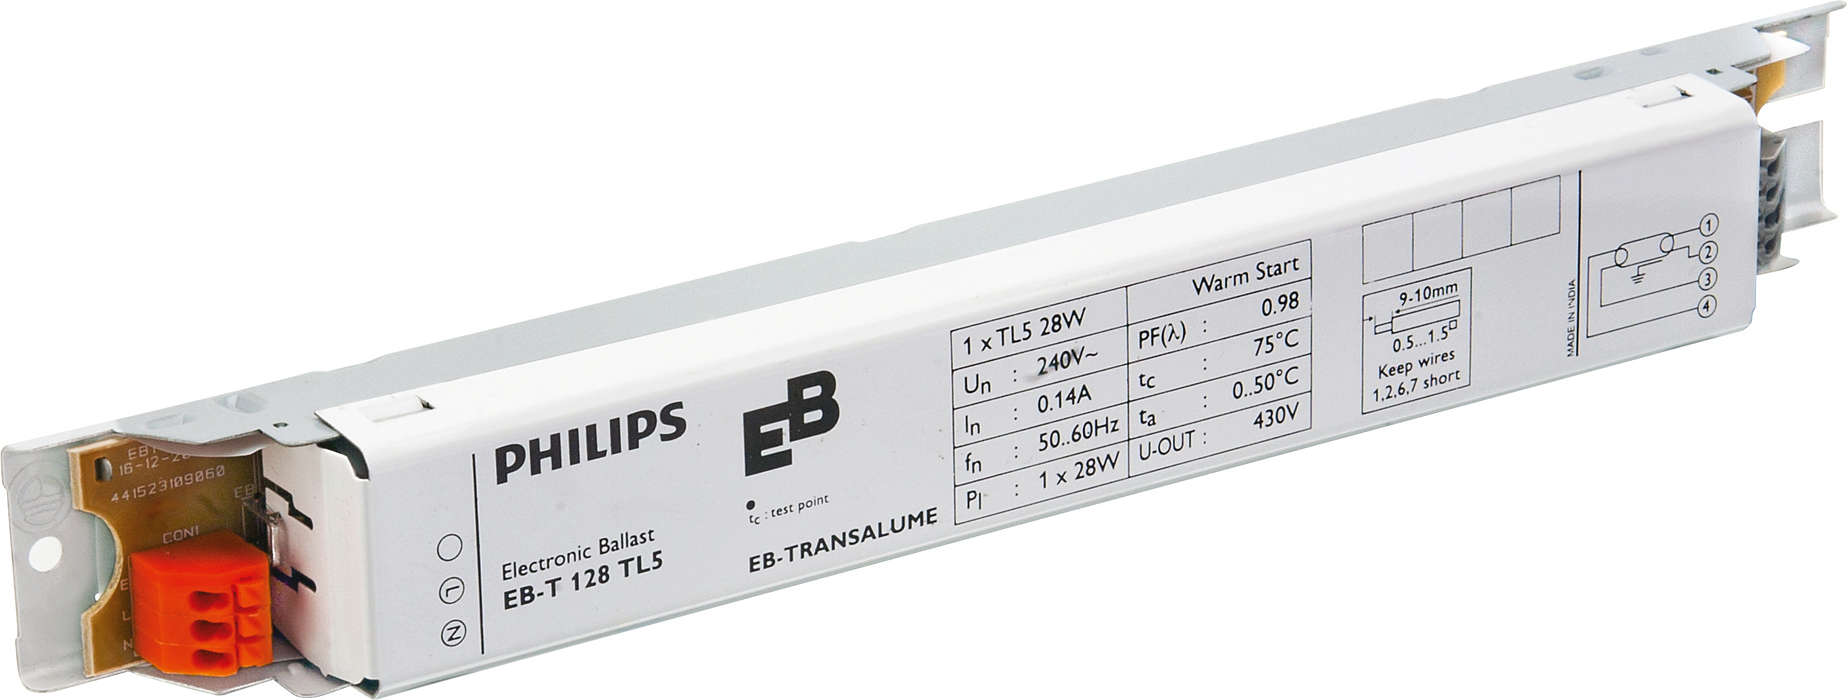 EB-T electronic ballasts for TL5 lamps